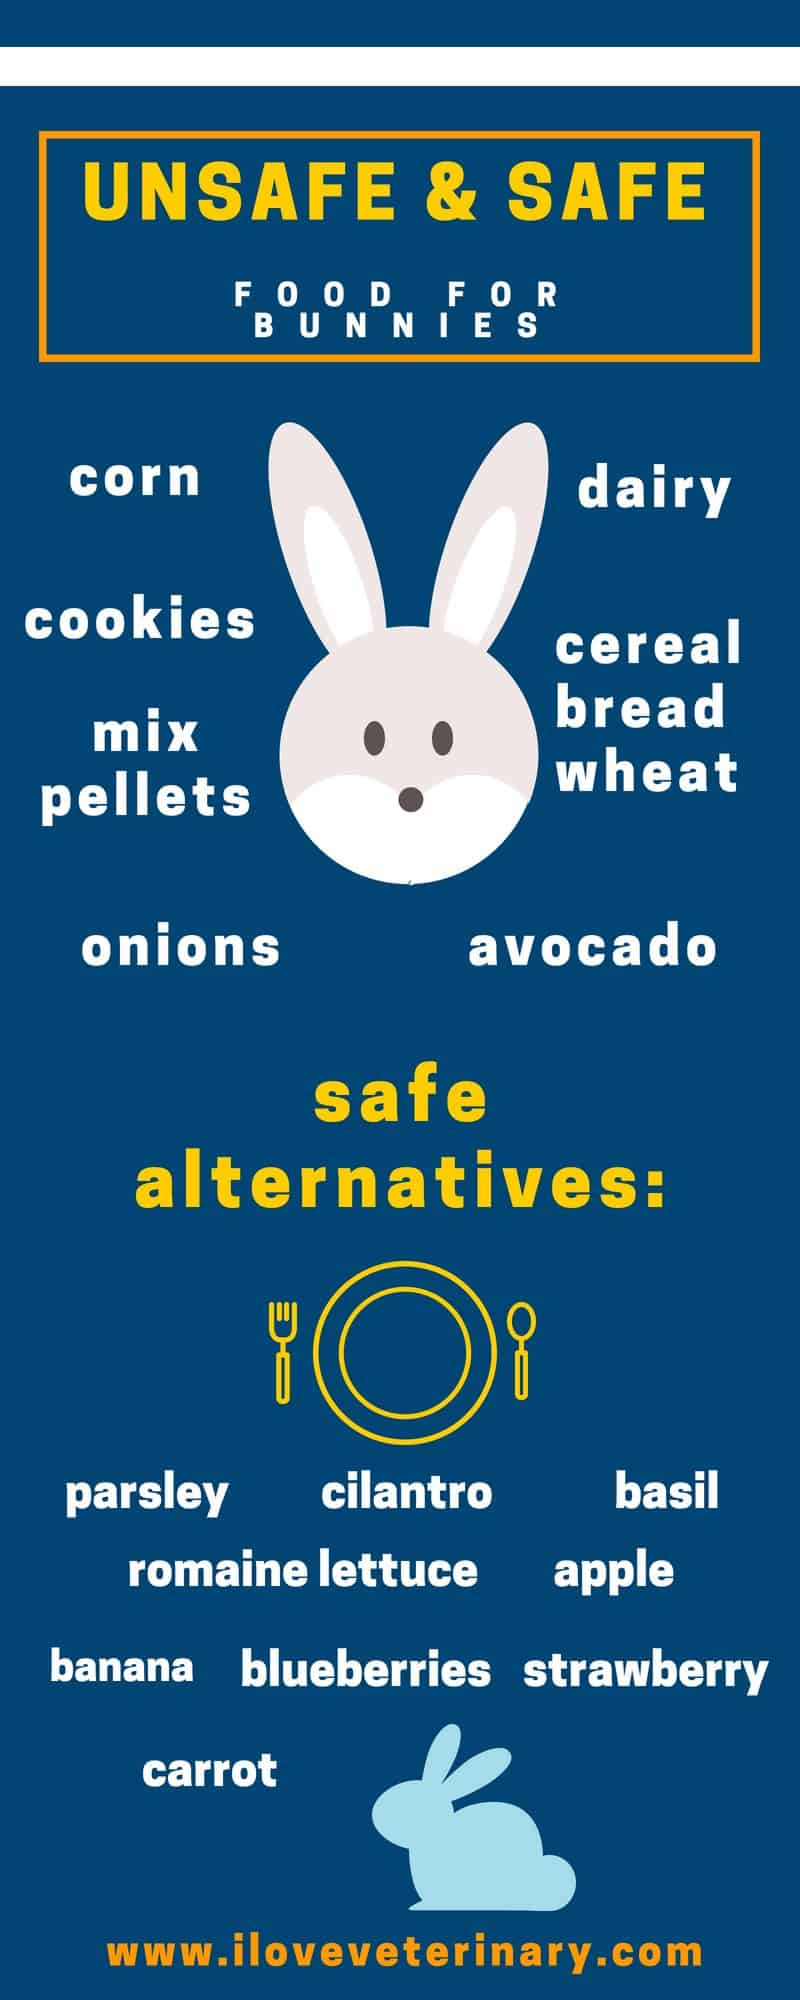 unsafe & safe food for bunnies infographic